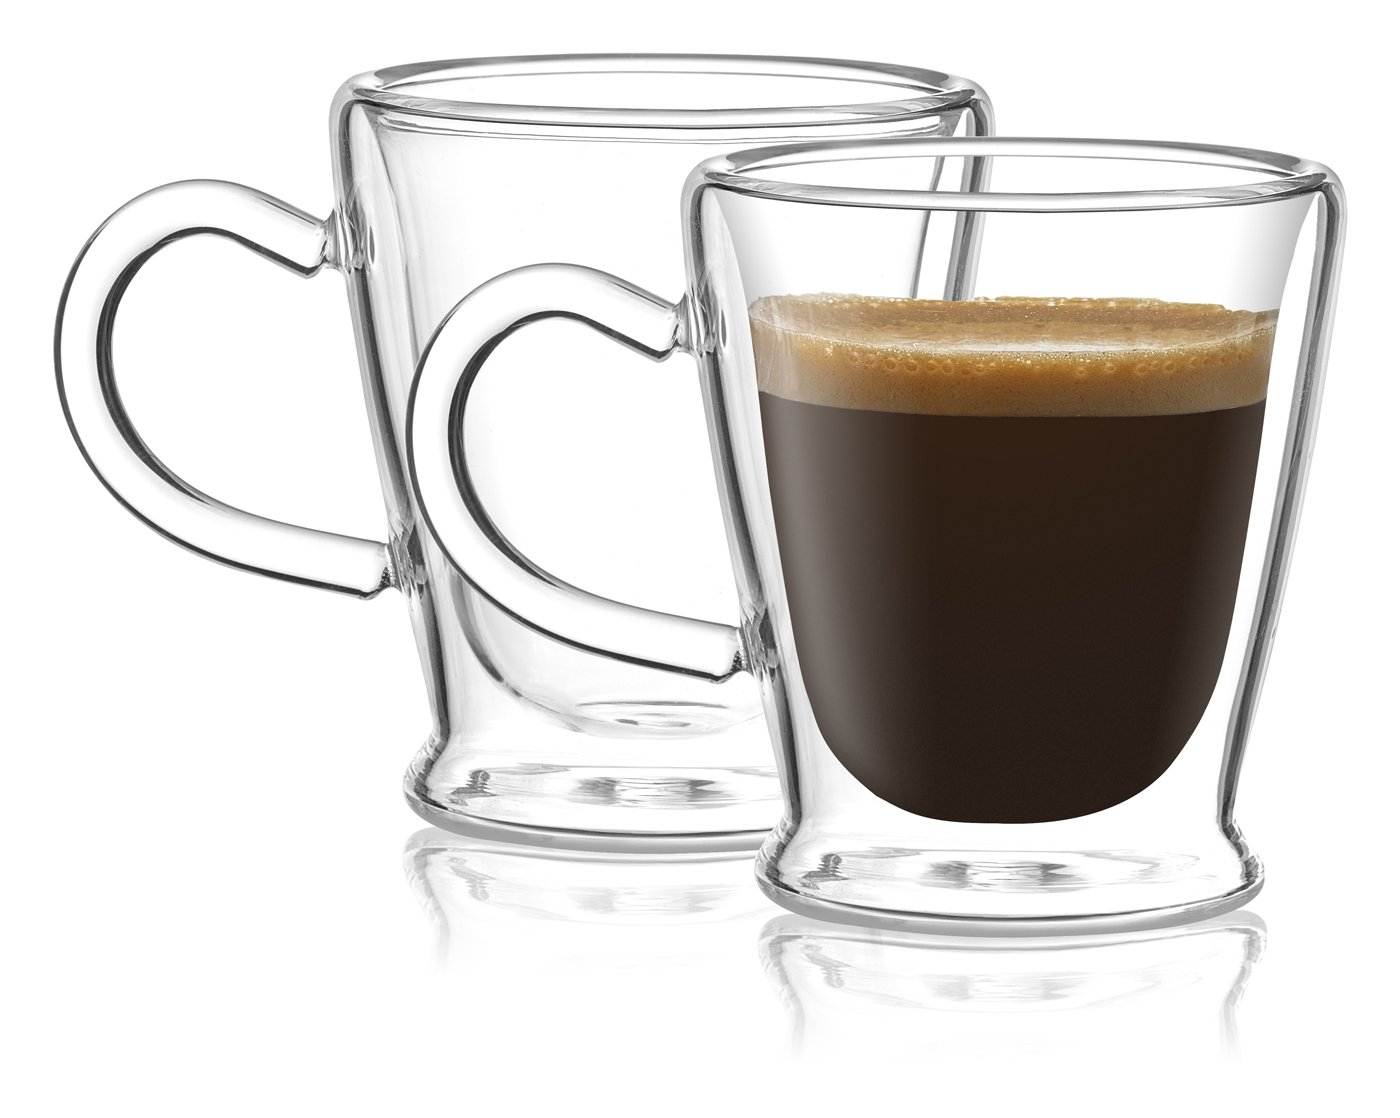 Circleware 44933 Insulated Heat Resistant Glass Coffee Mugs with Handle Set of 2, Beverage Drinking Home Kitchen Entertaining Tea Cappuccino Espresso Shots Glassware Cups, 2.6 oz, Clear by Circleware